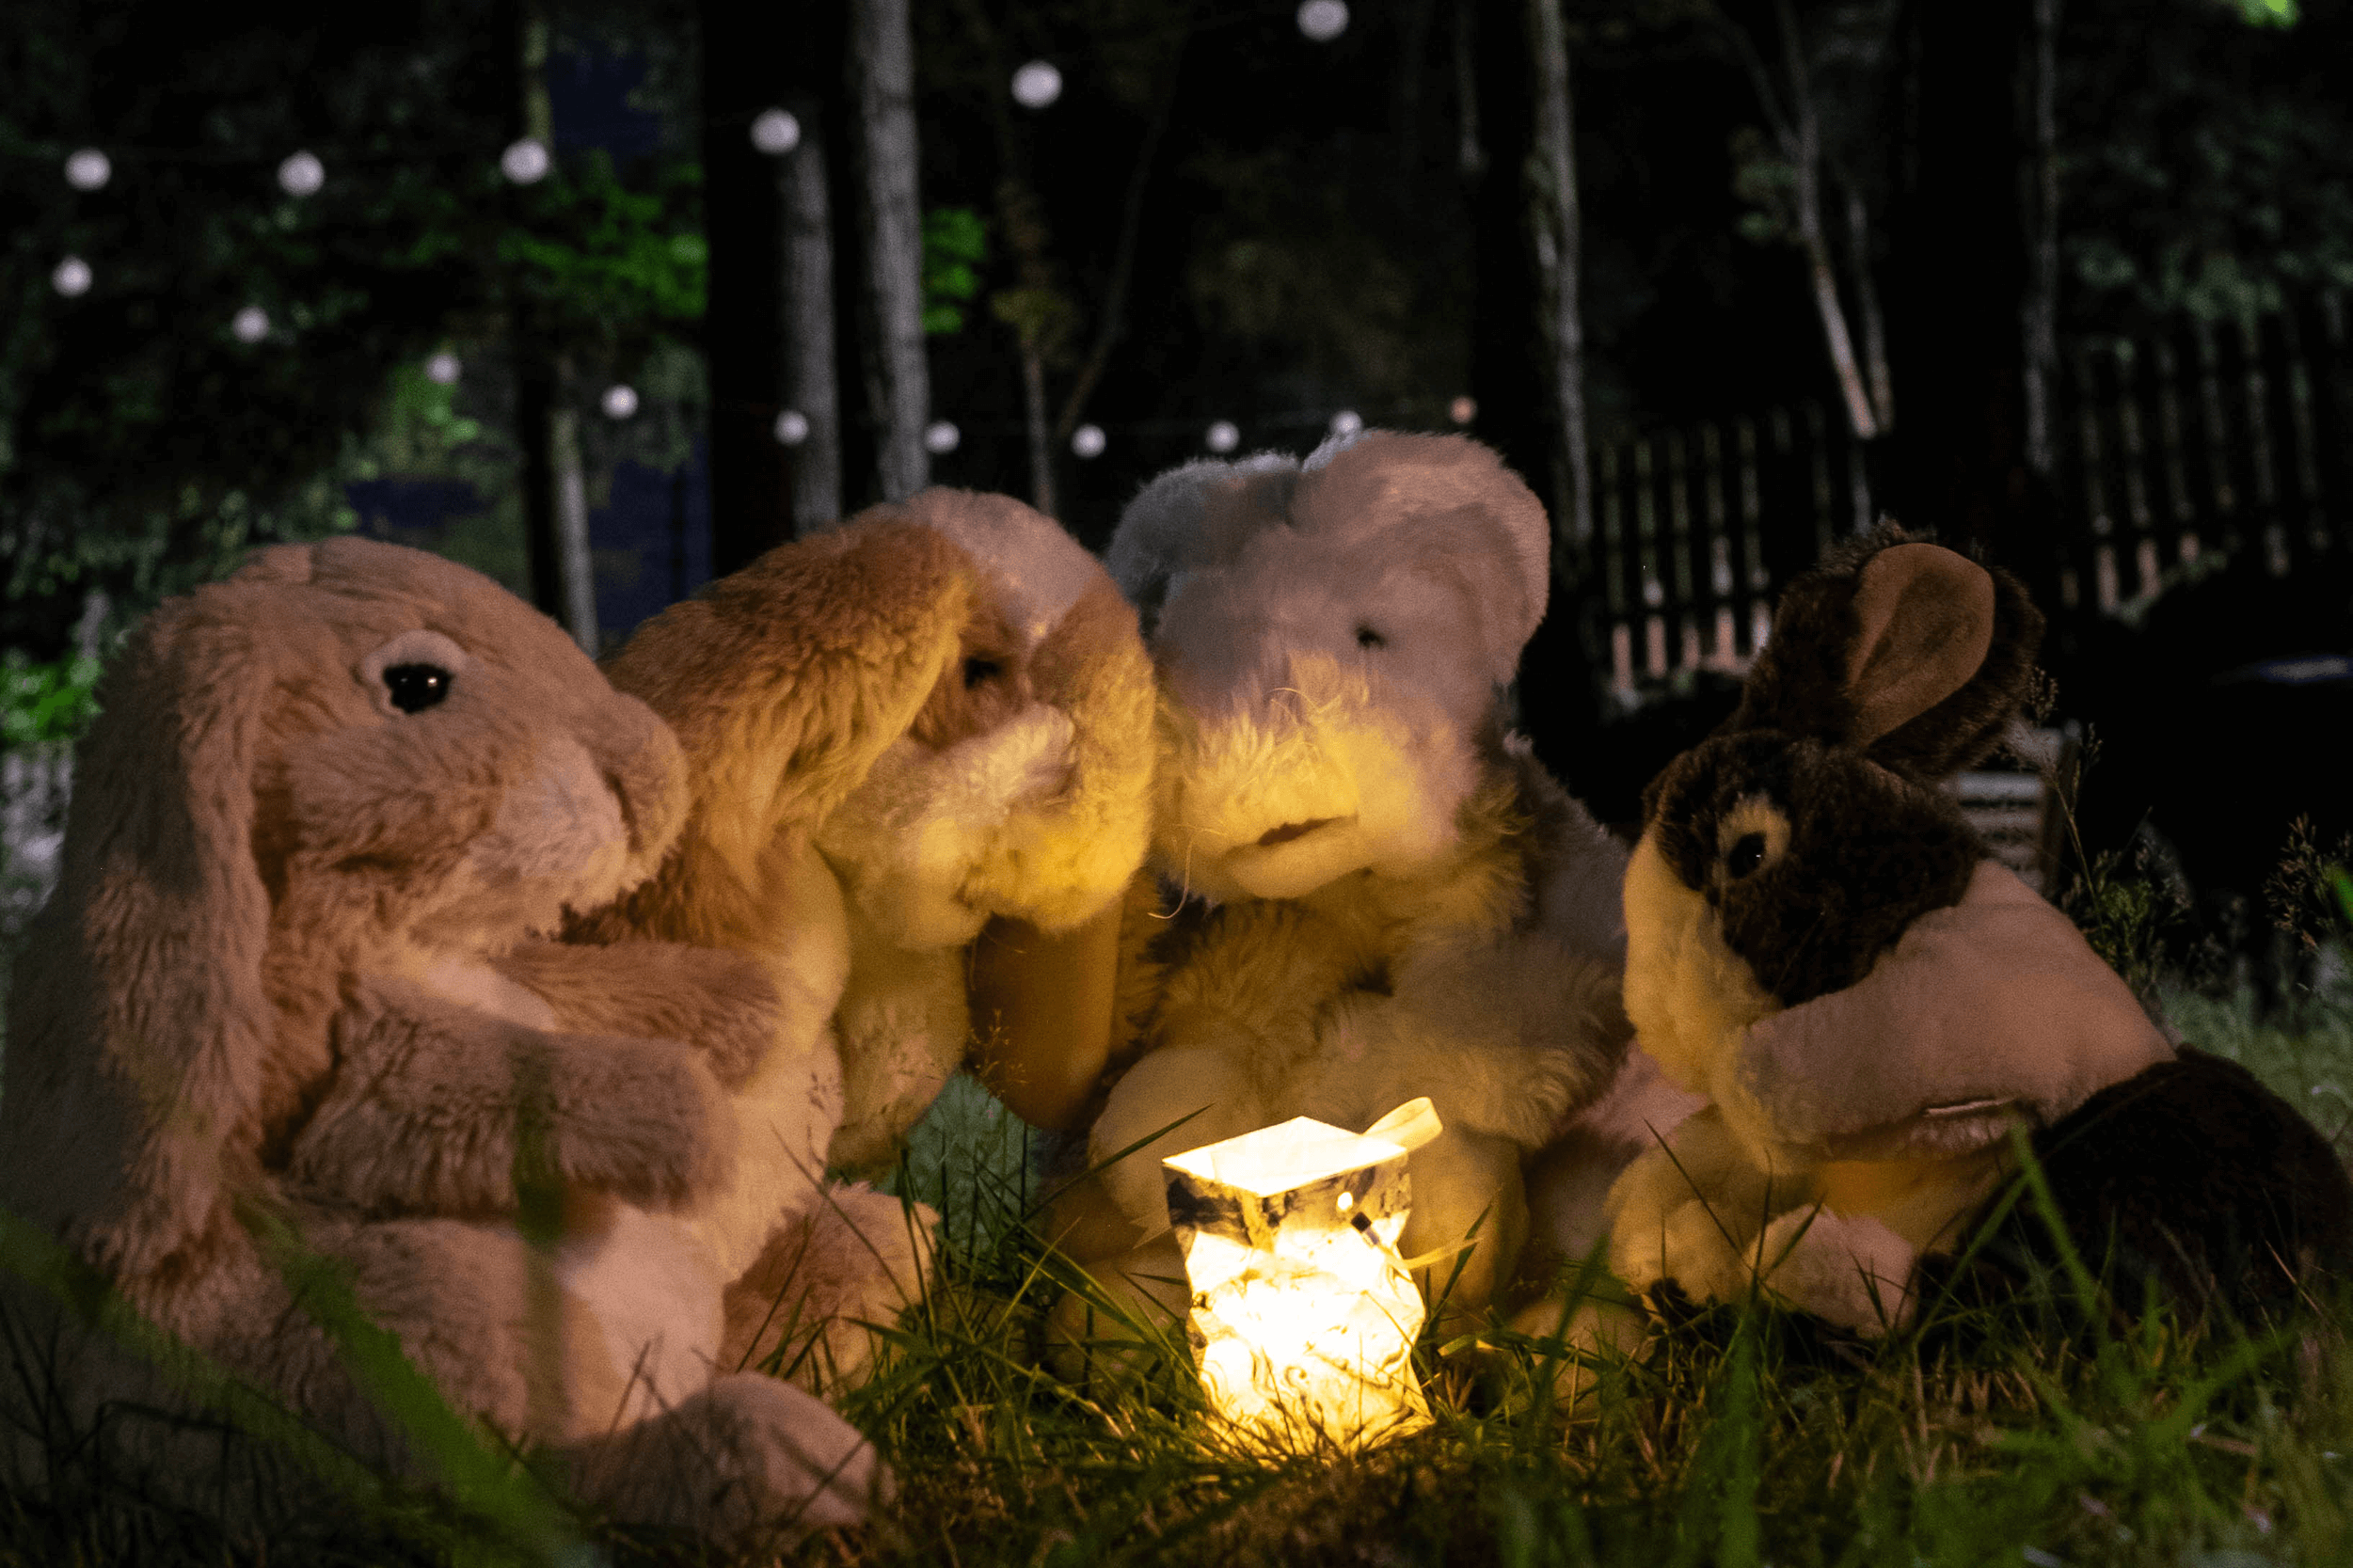 Folkmanis bunny puppets at night